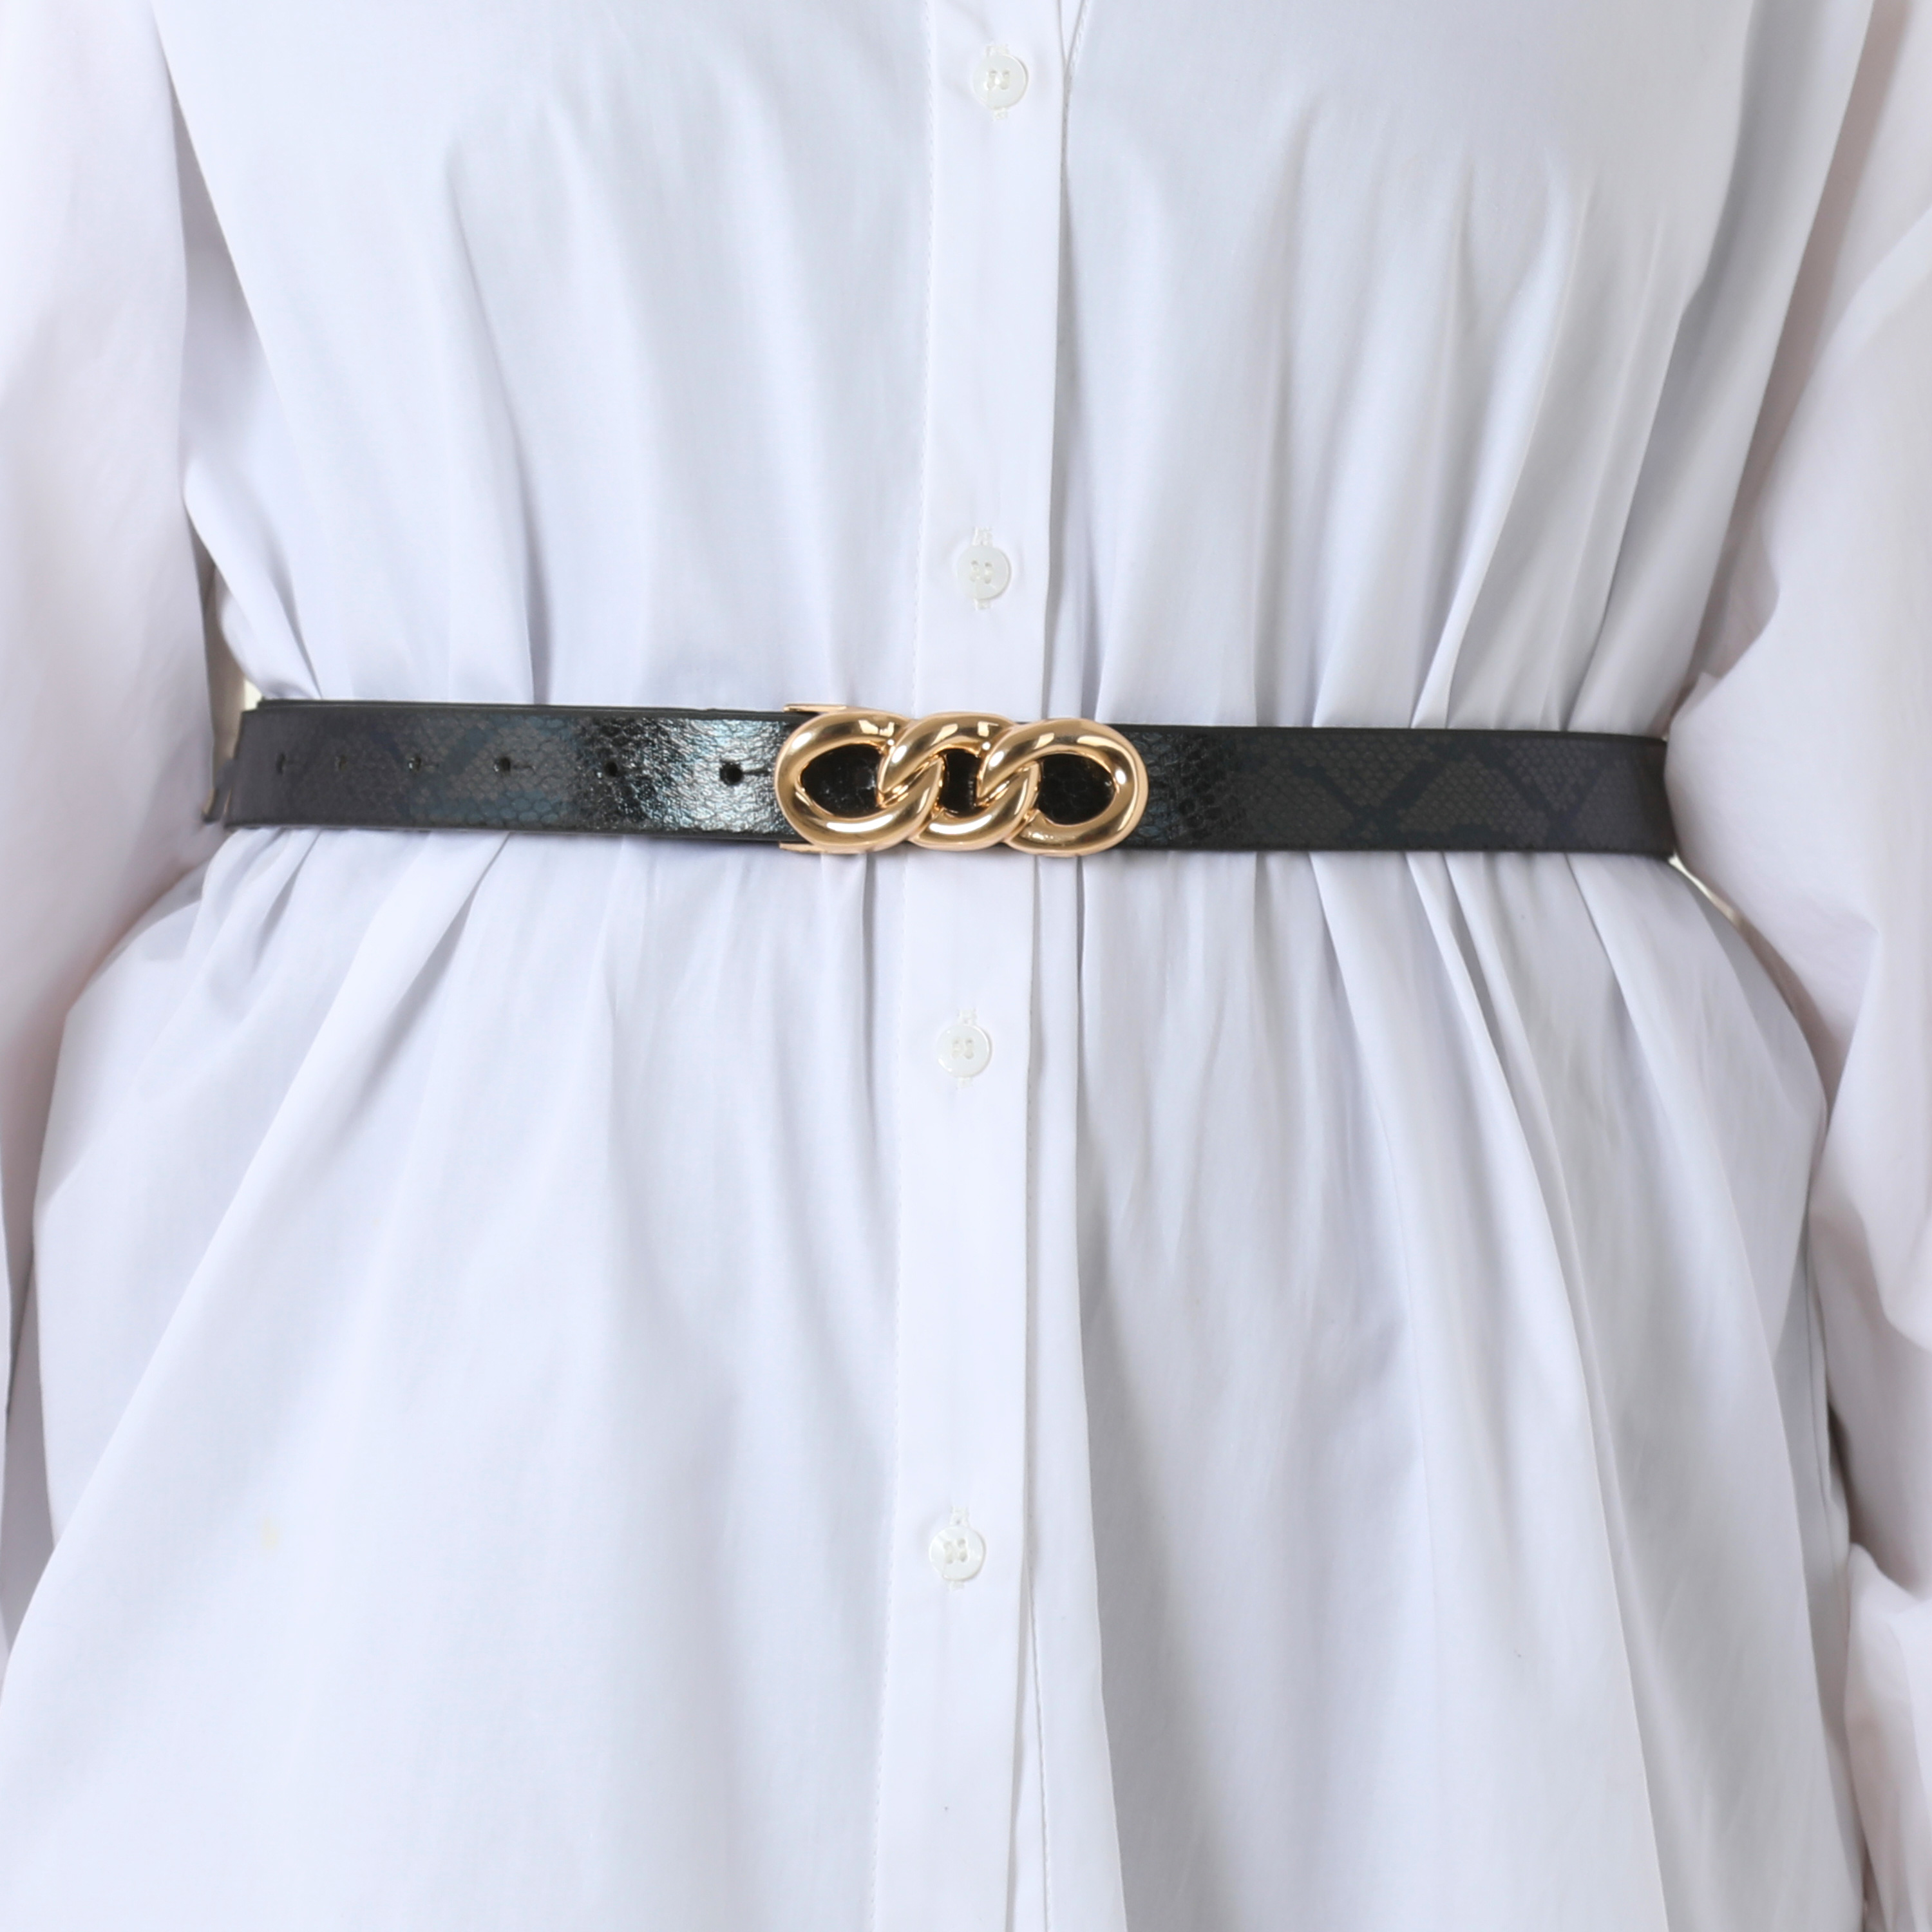 Gold Chain Detail Belt In Black Snake Print Faux Leather